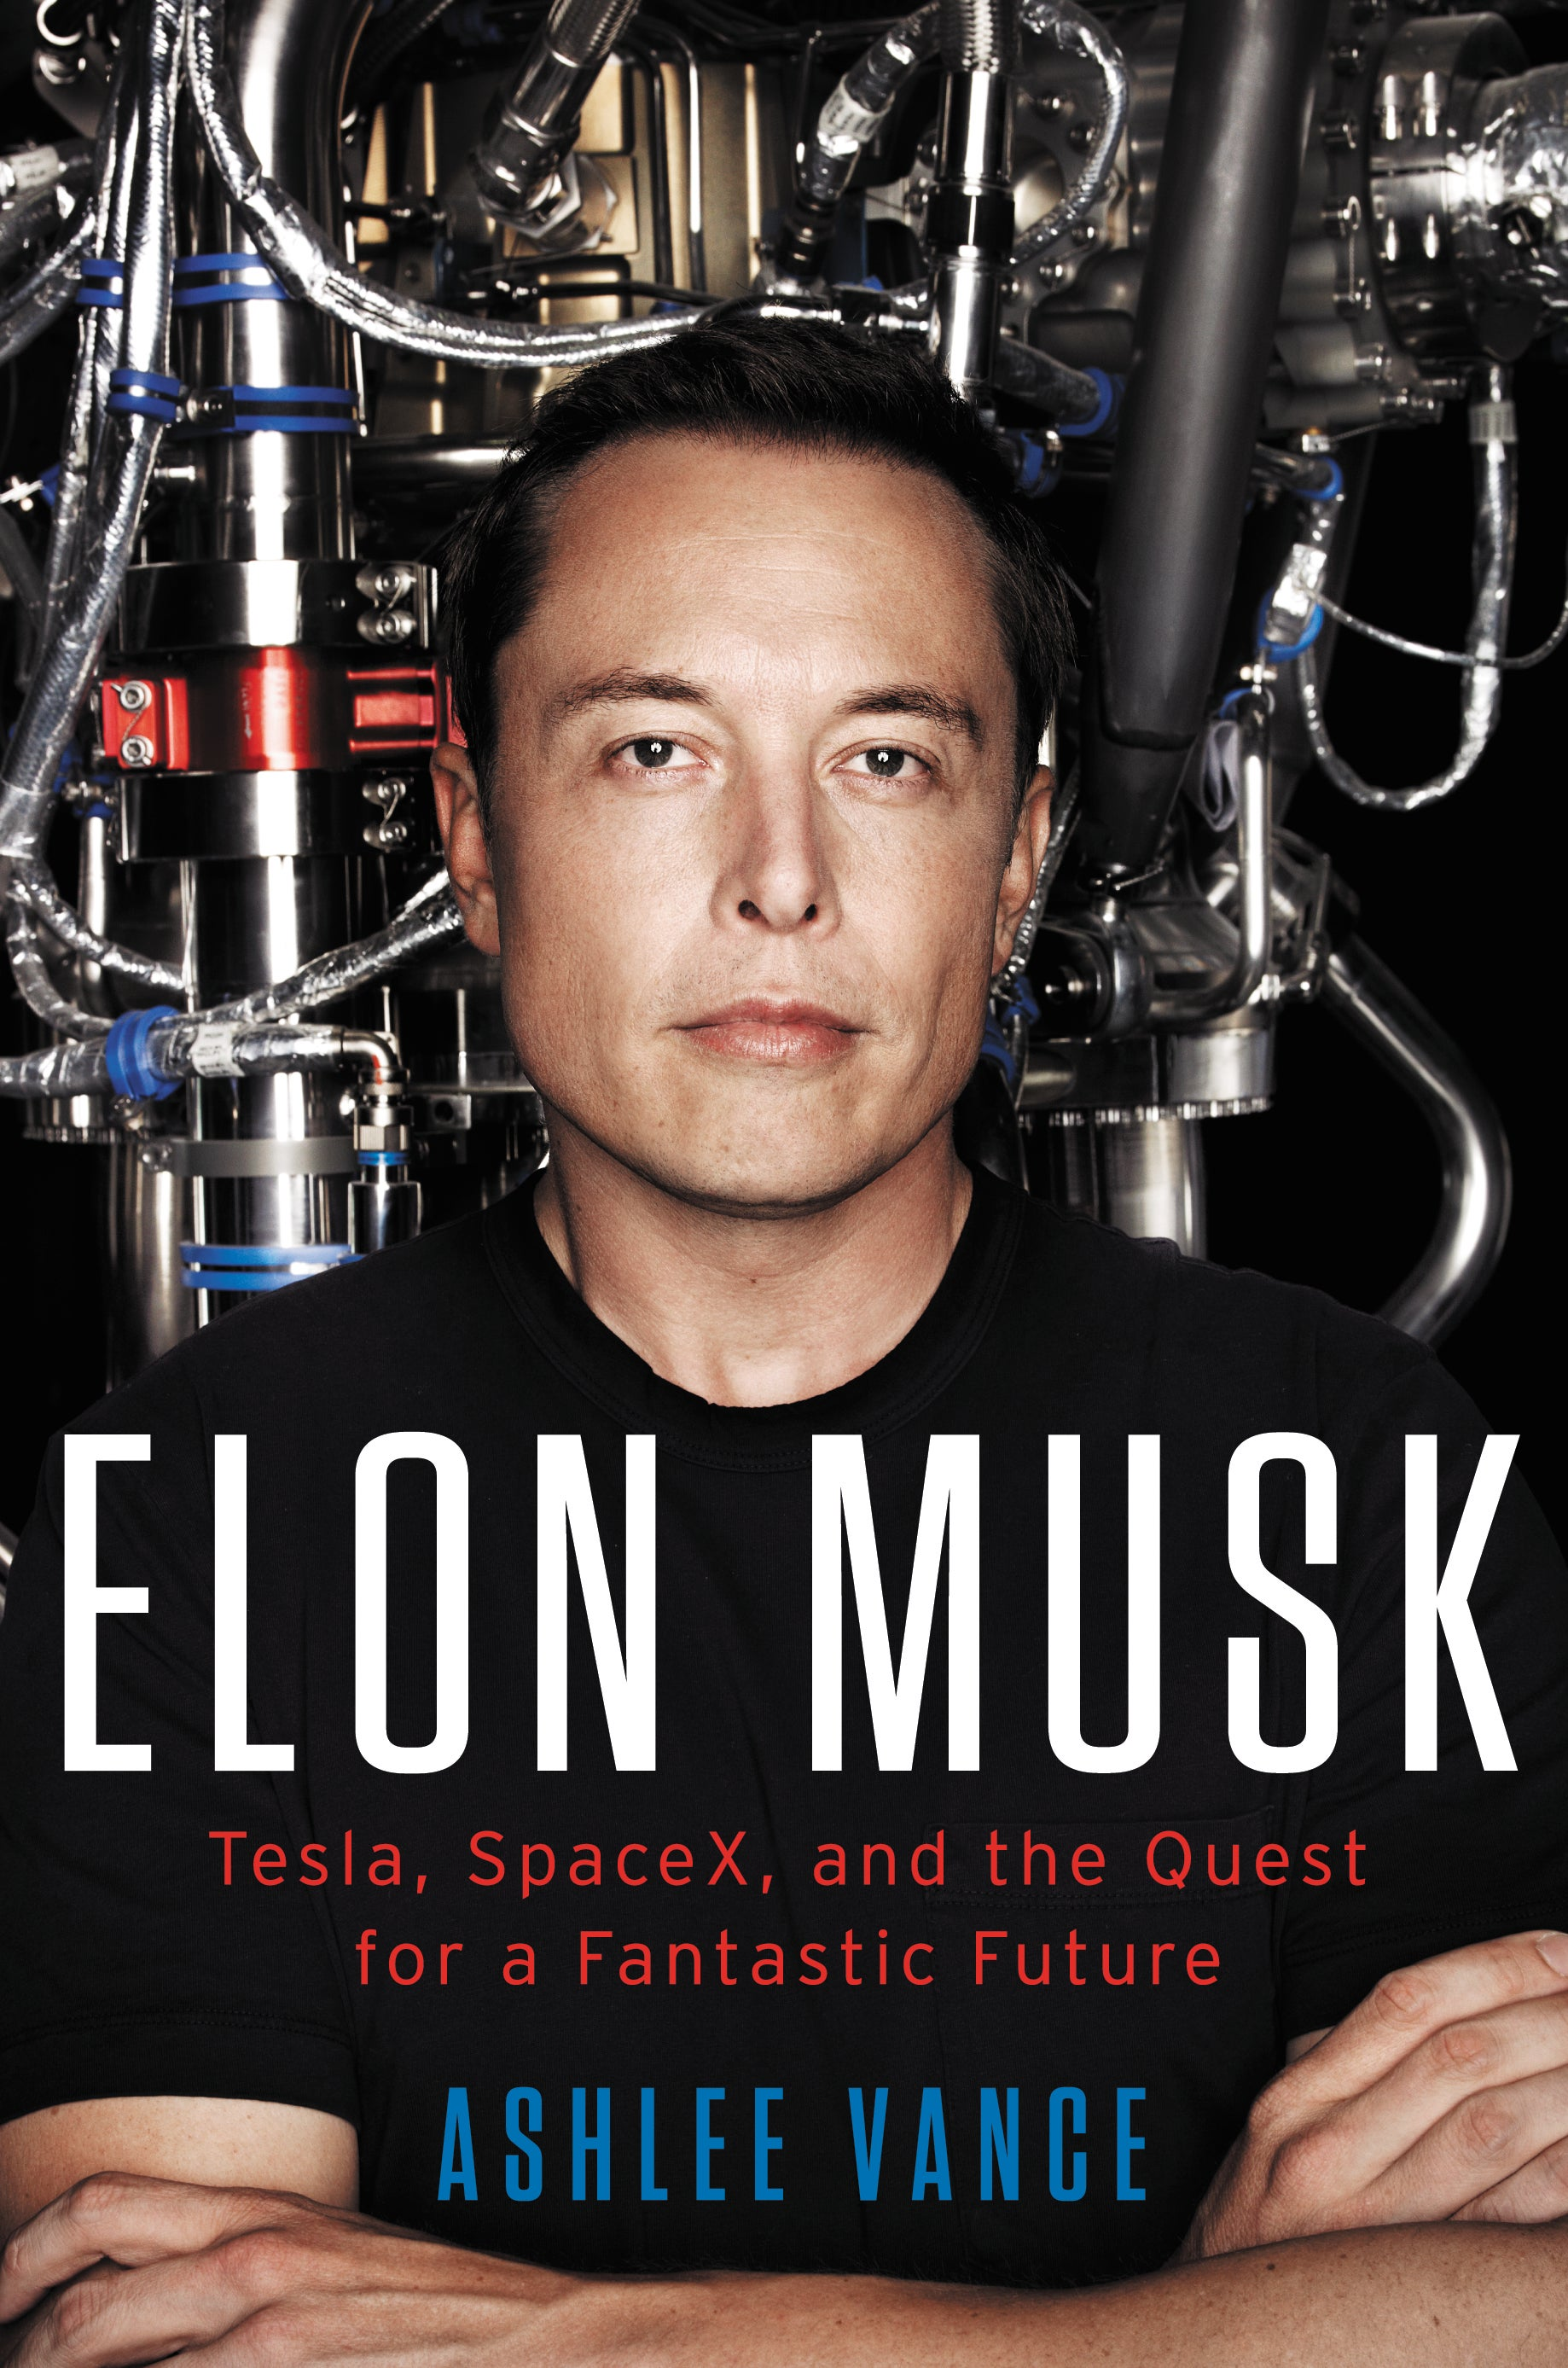 Book Review: Elon Musk: Tesla, SpaceX, And The Quest For A Fantastic Future By Ashlee Vance